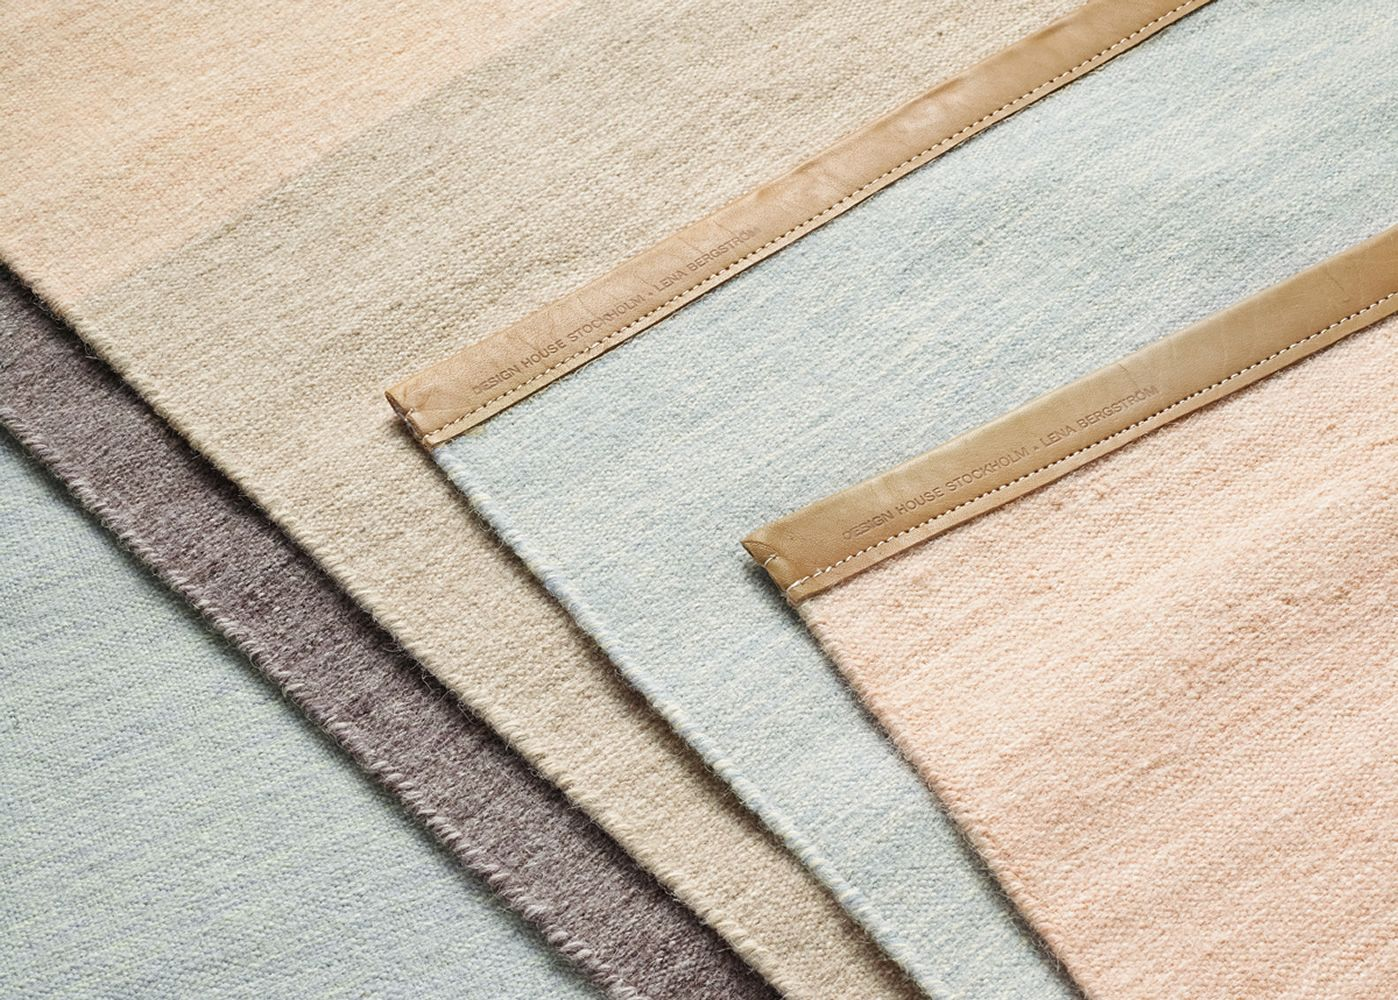 Detail: rugs in pure wool with leather edges